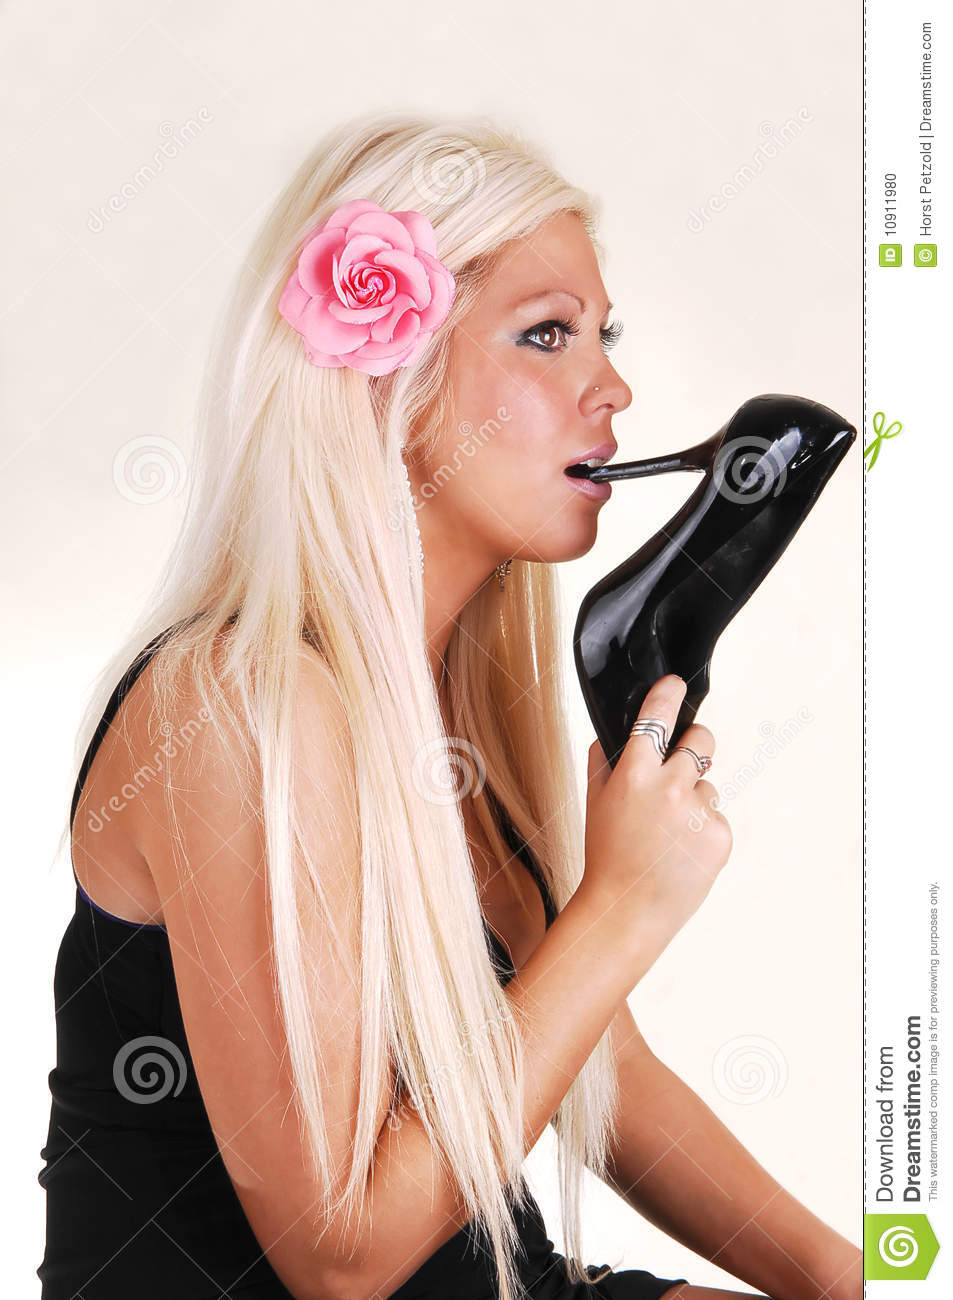 Woman With High Heel In Mouth. Stock Photo - Image: 10911980